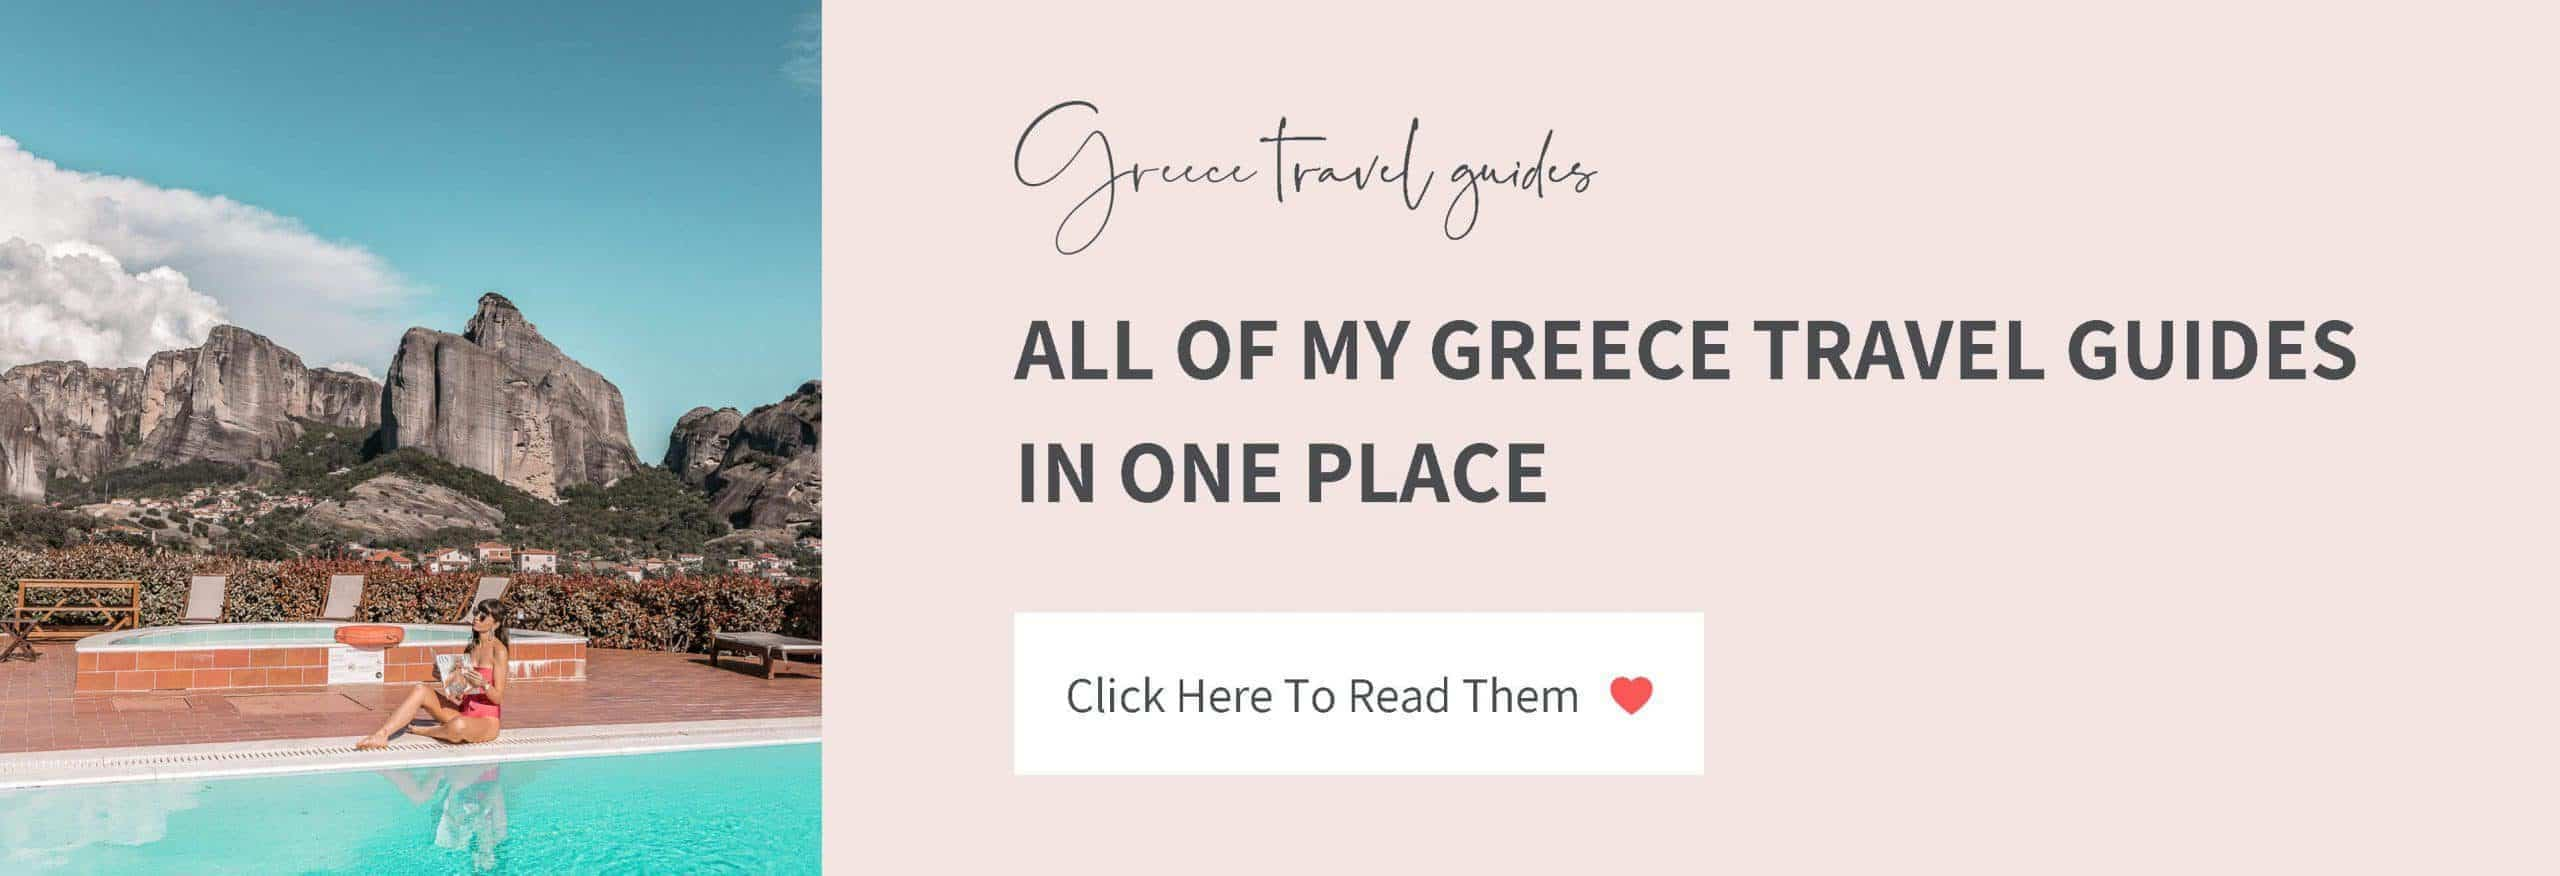 Greece travel guides